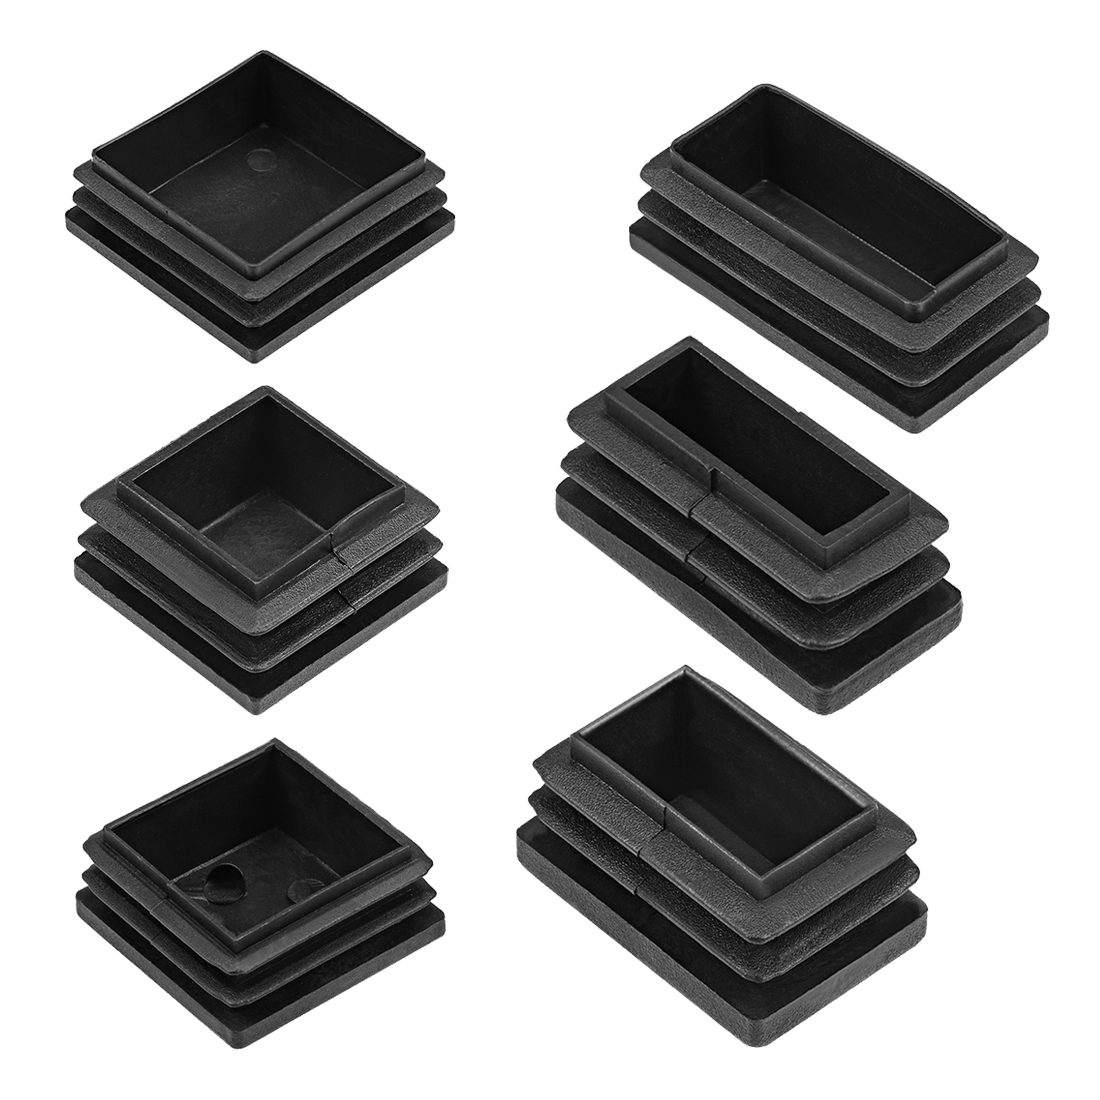 Uxcell 4-100pcs Plastic Plug End Caps 28x28/30x15/30x20/50x25/50x50mm Rectangular Furniture Table Chair Legs